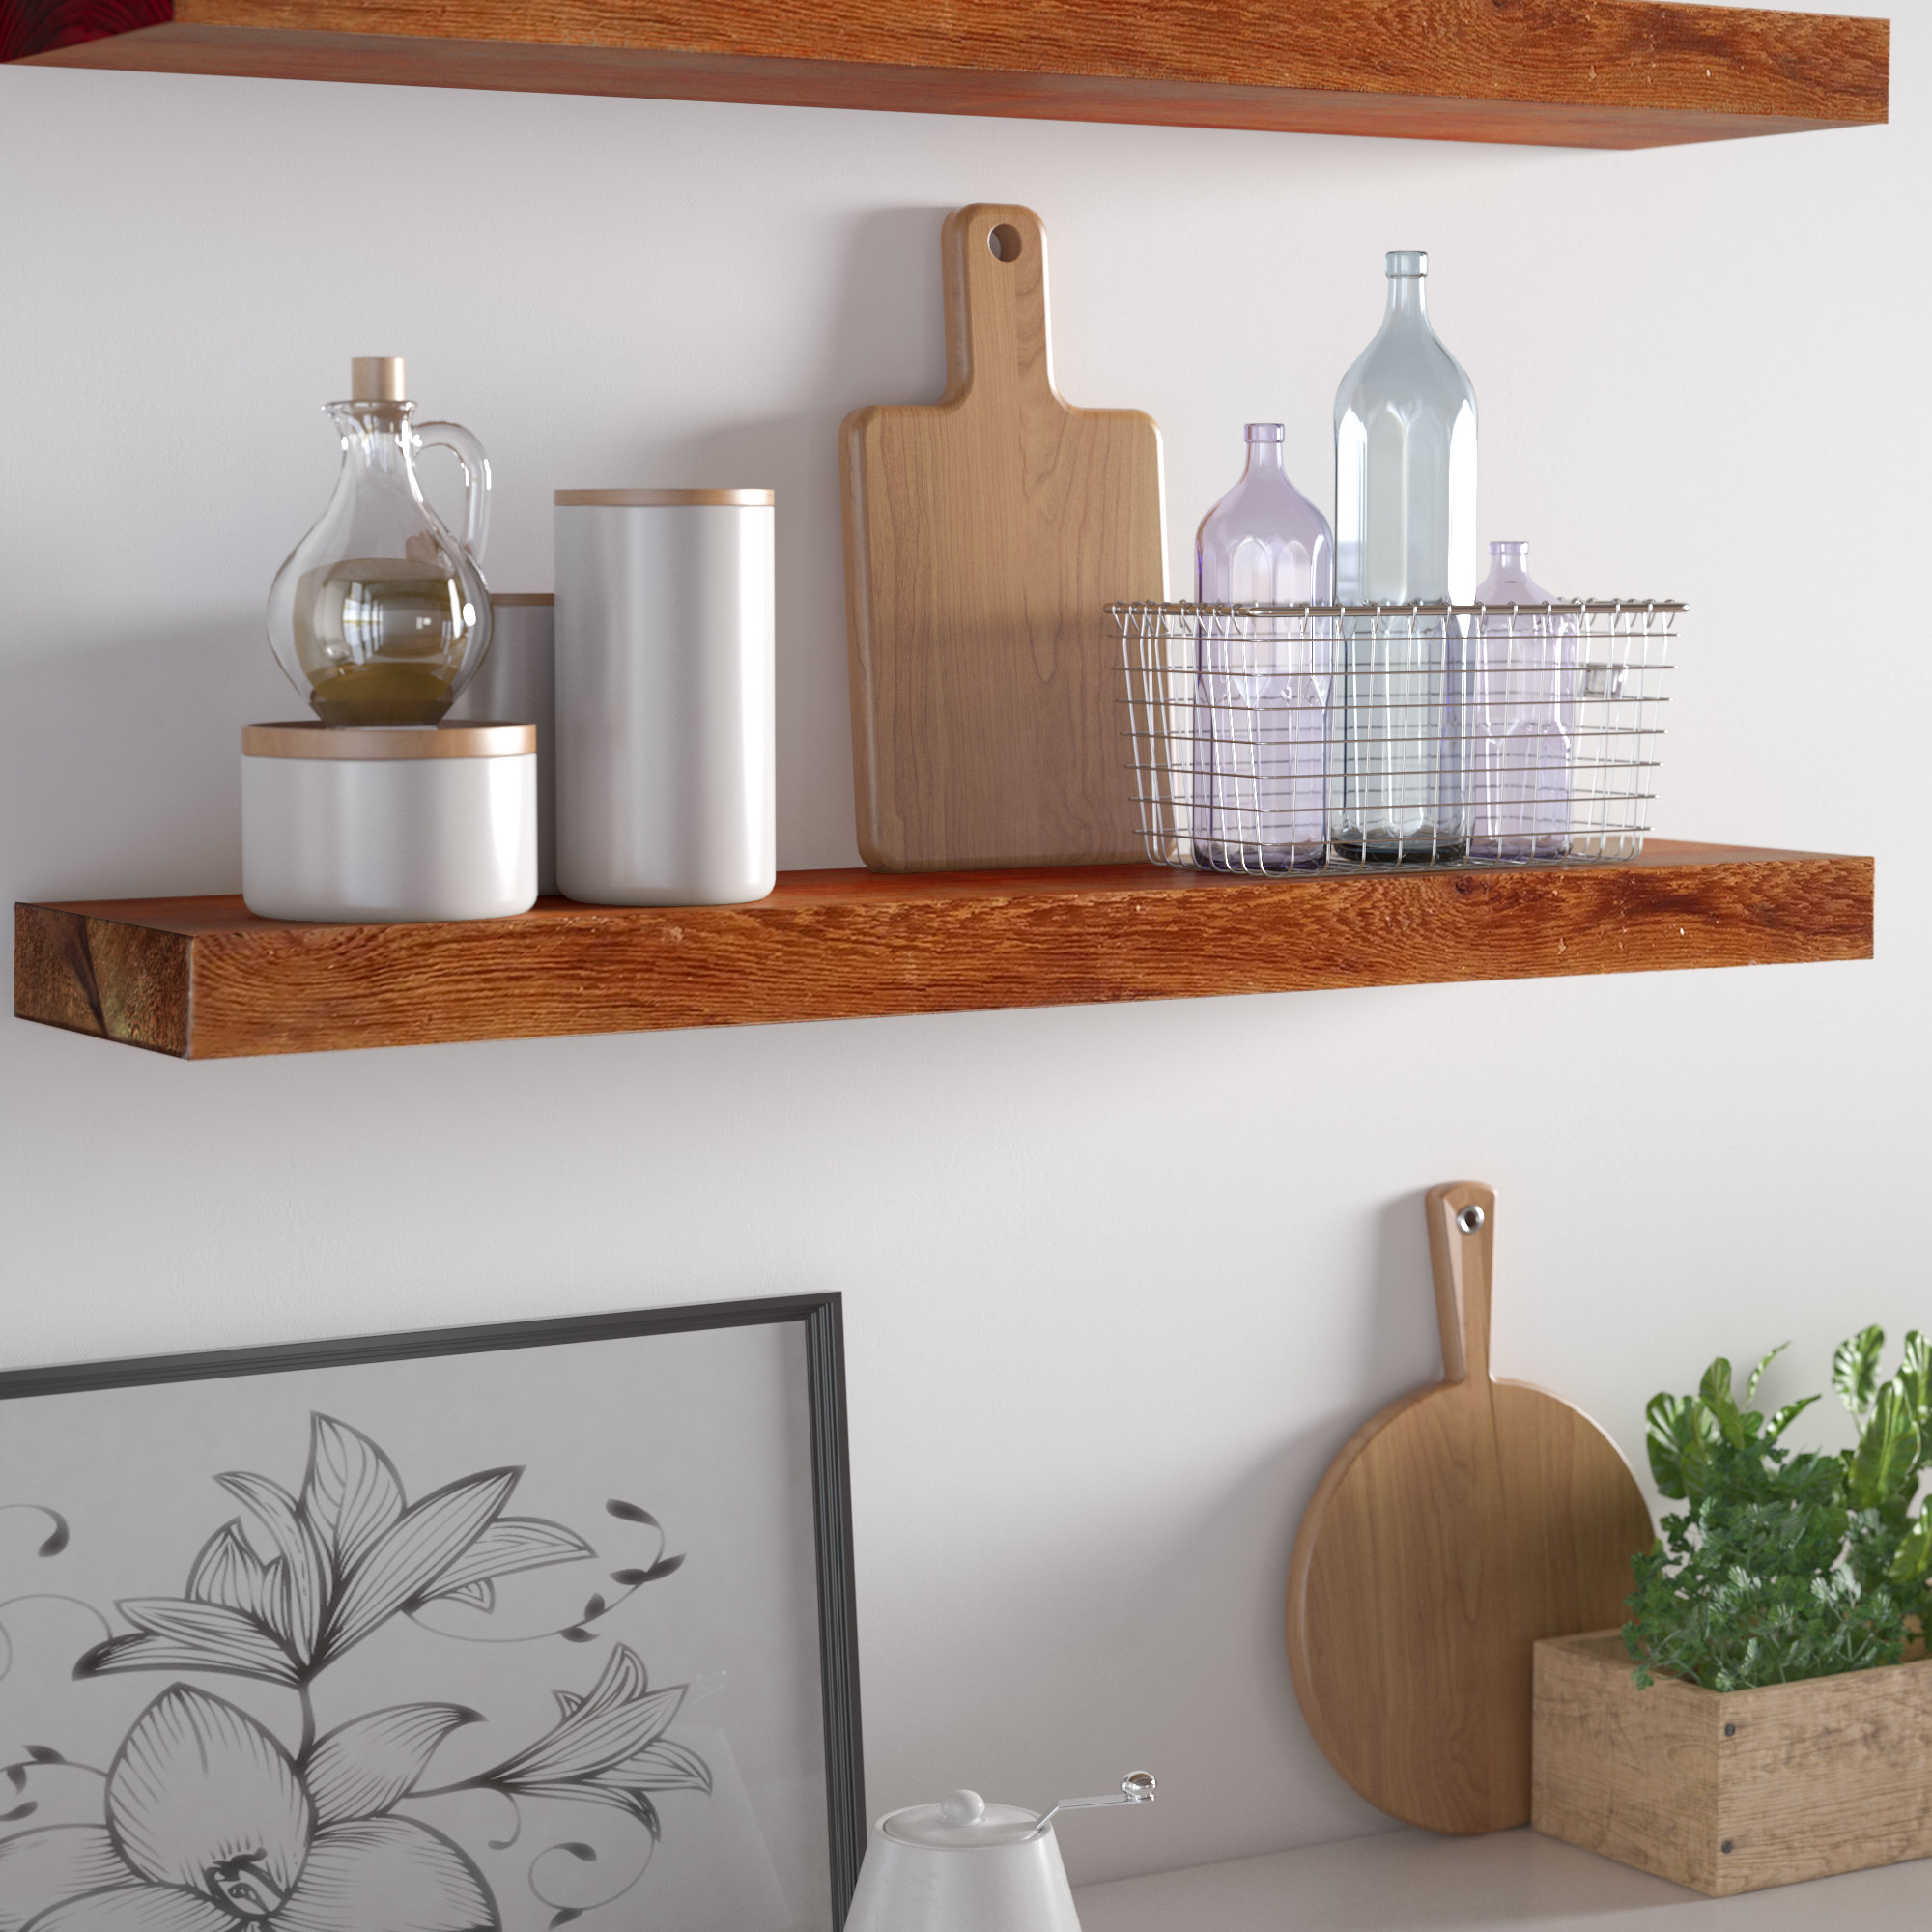 loon peak sharri rough cedar true floating shelf ledge bookshelf coat and umbrella rack ikea table top shelves white wall mounted unit bathroom storage tower hanging shoe canadian